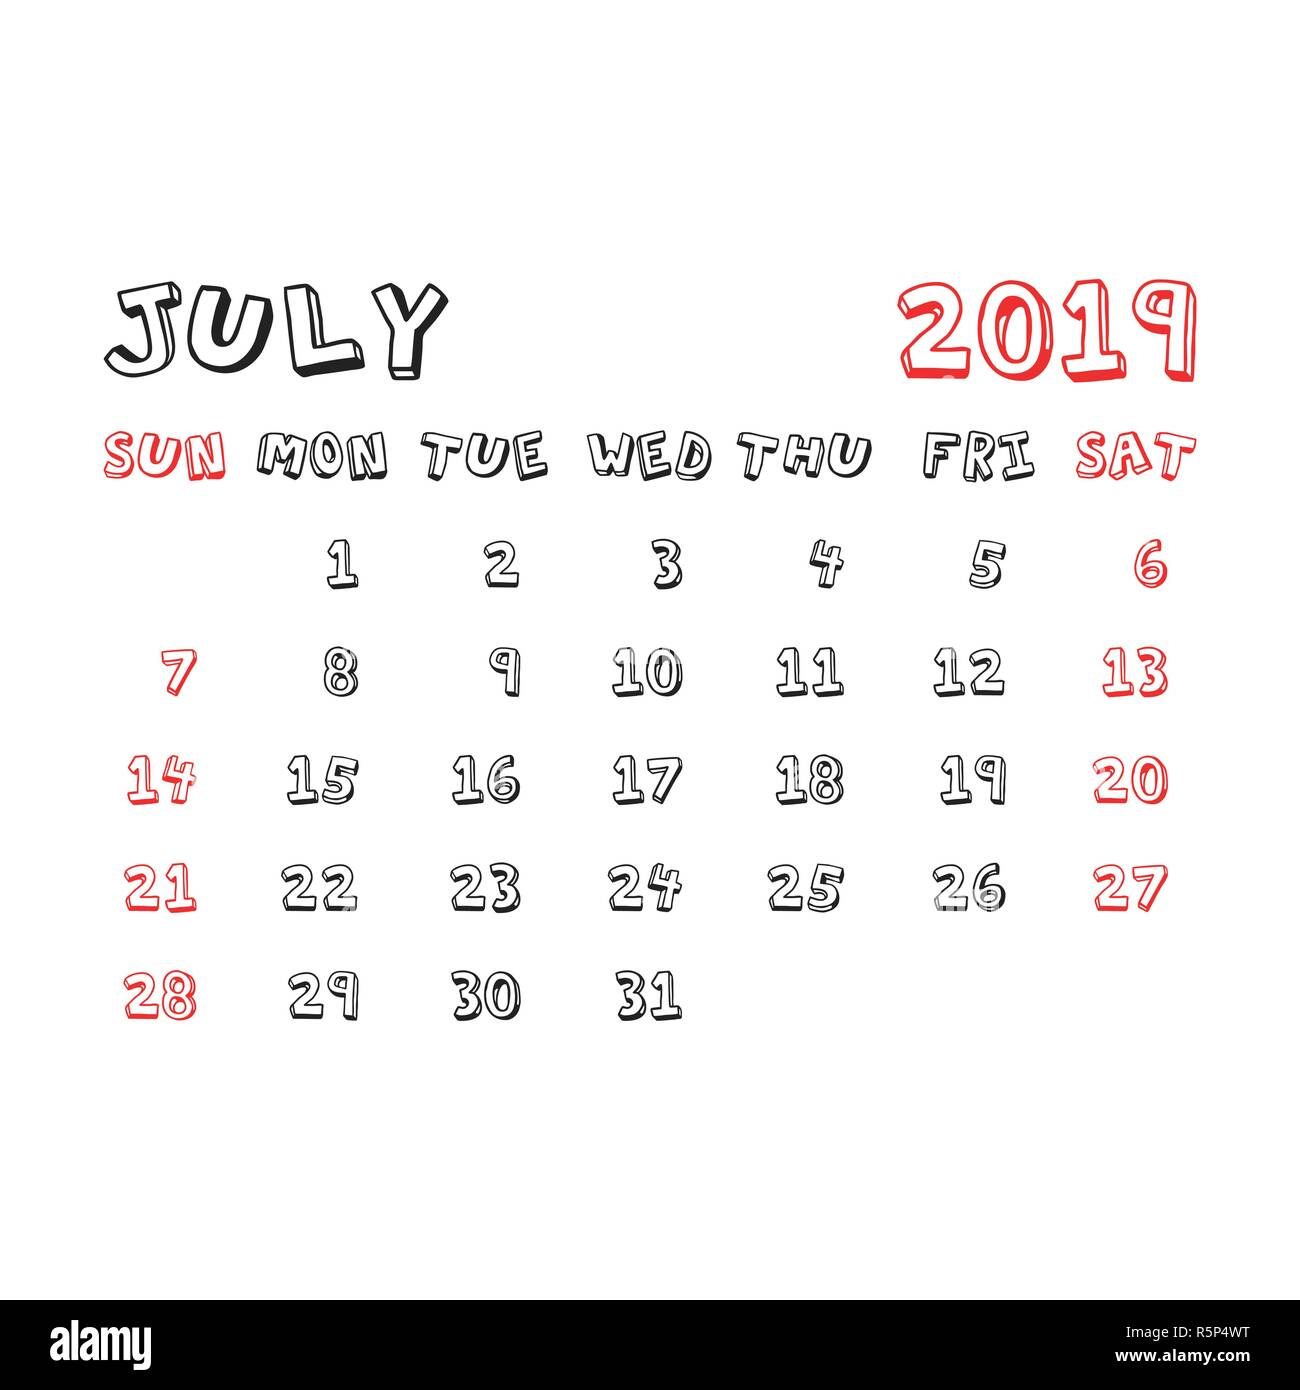 Calendario Julio 2019 Vector.Calendar July 2019 Year In Cartoon Child Style Calendar